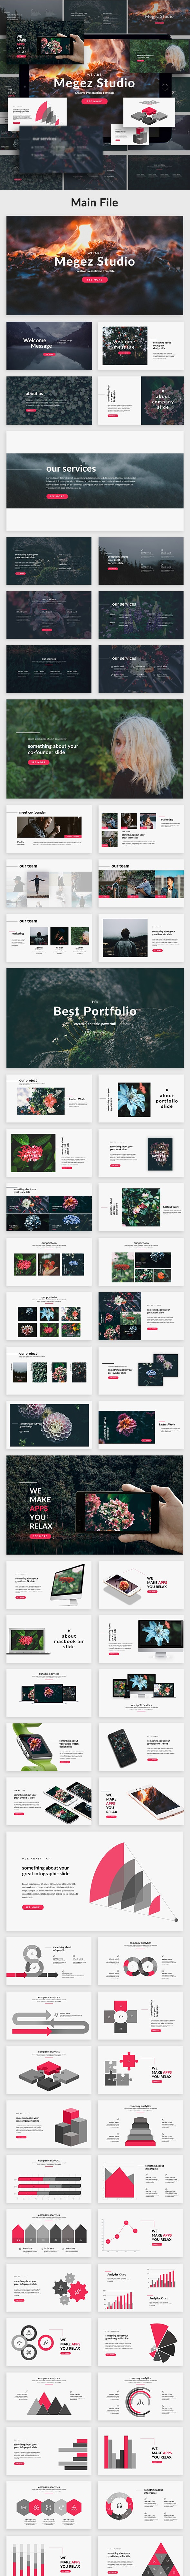 Megez - Creative Powerpoint Template - Creative PowerPoint Templates